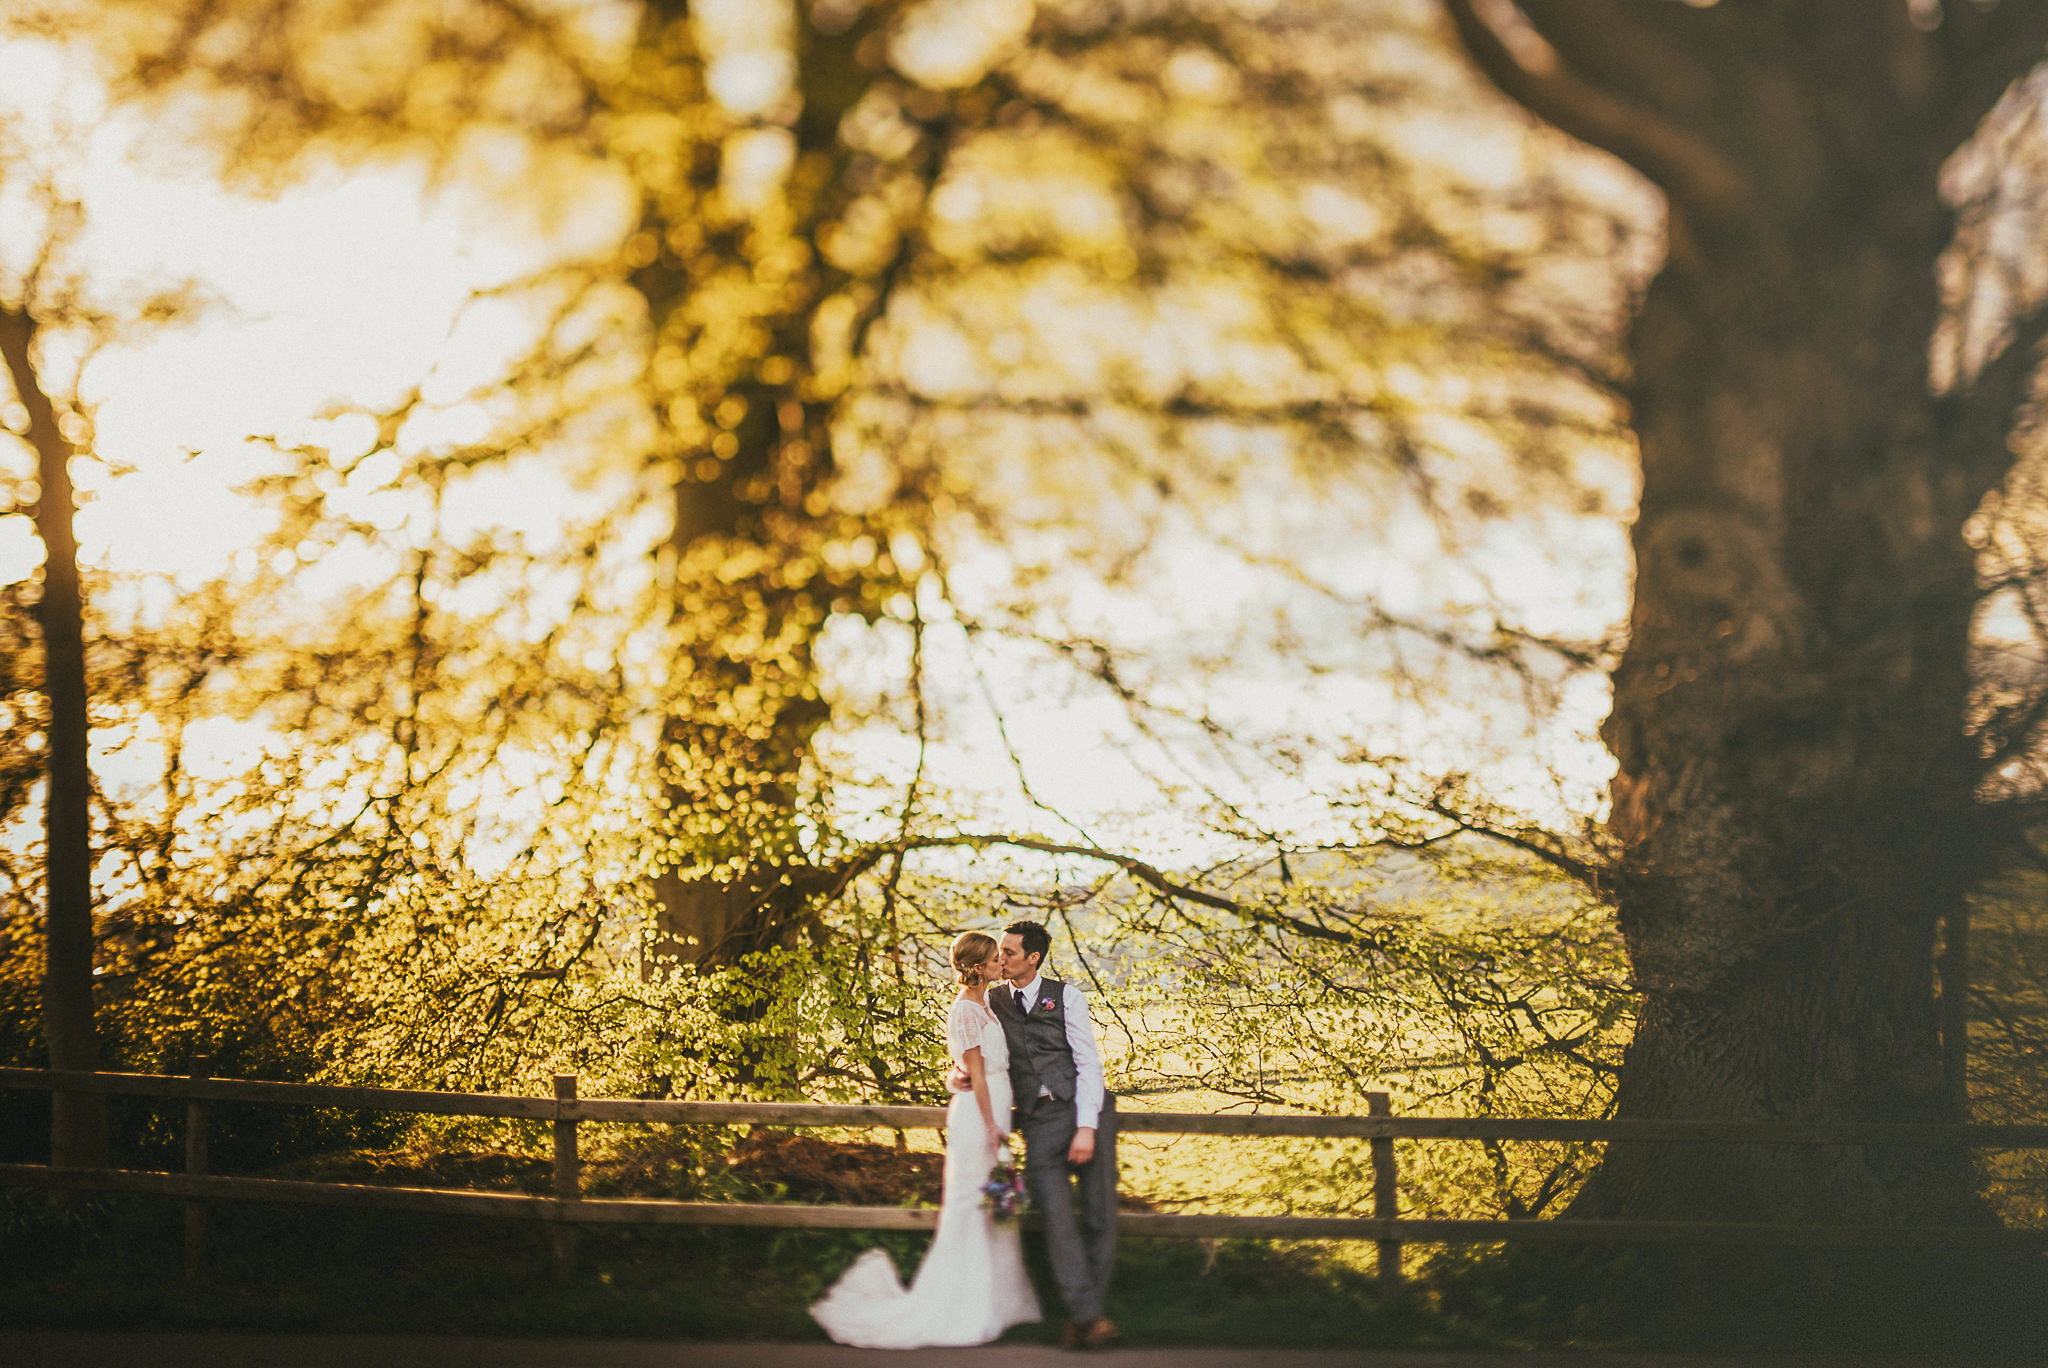 paul-marbrook-best-wedding-photographer-north-wales-113113